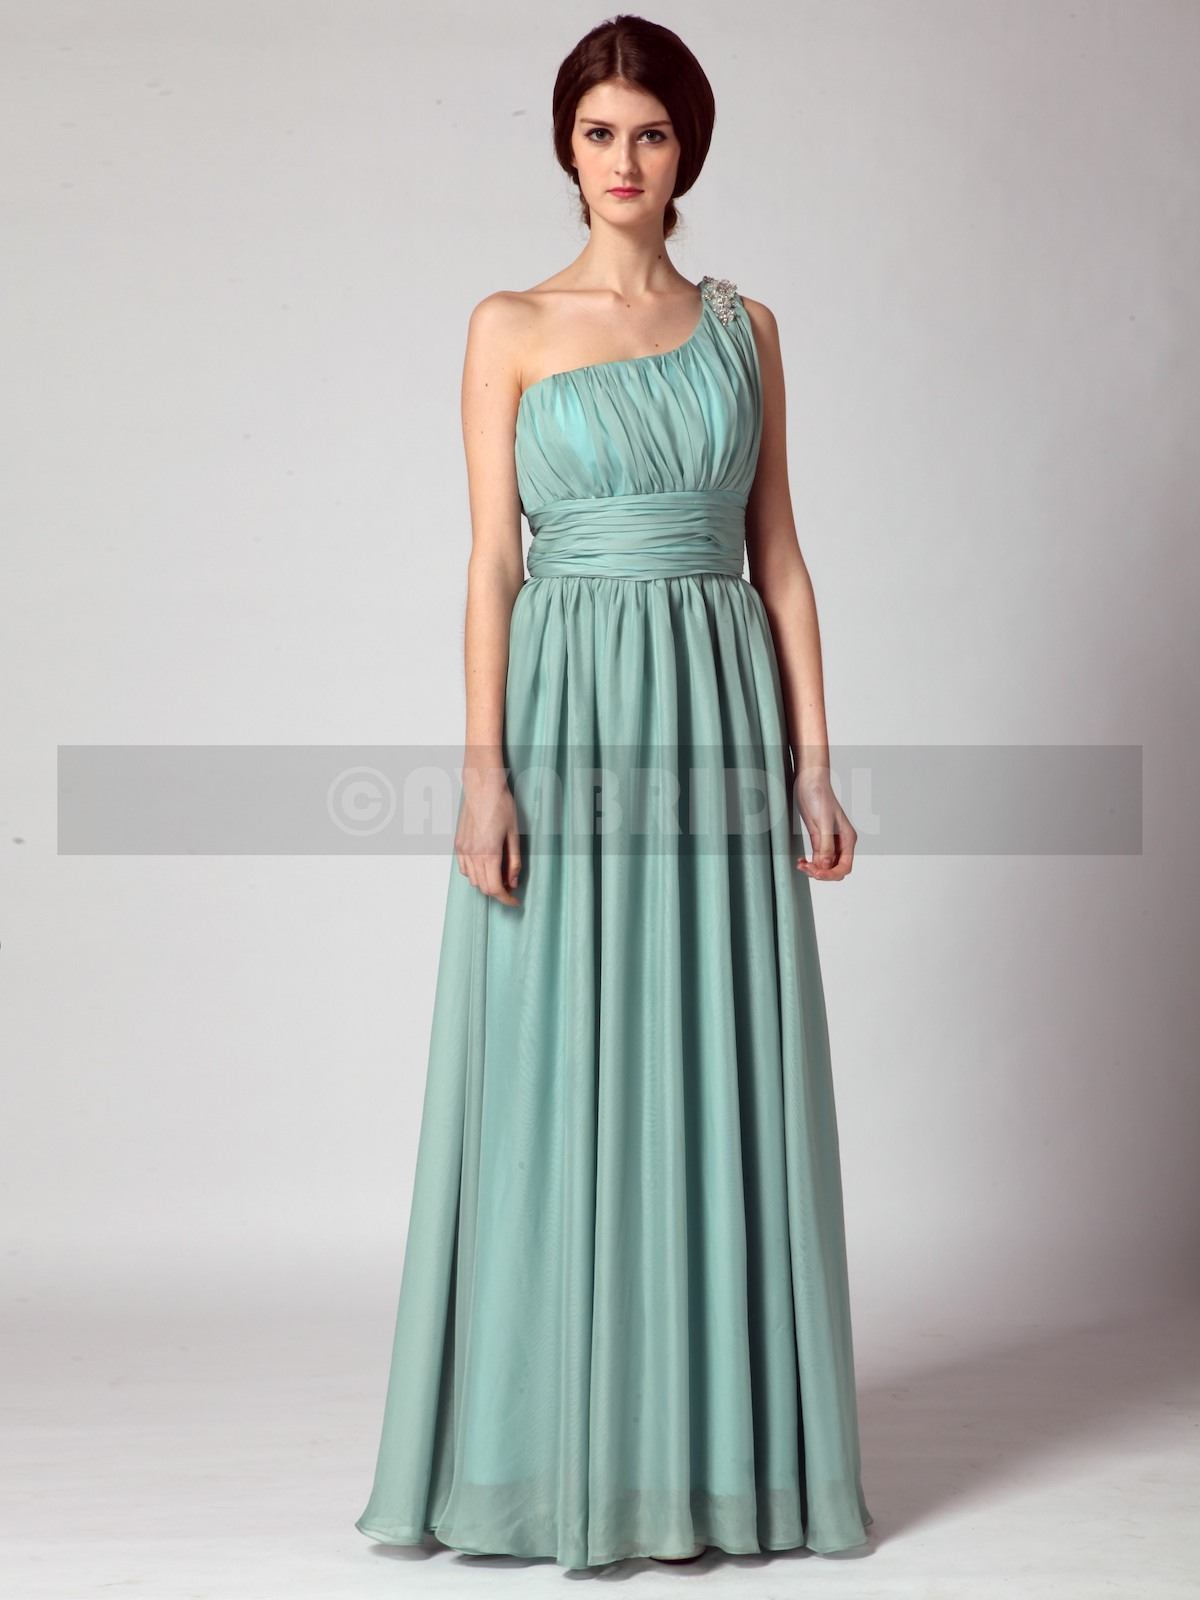 Grecian Asymmetric Chiffon Bridesmaid Dress B435-Front